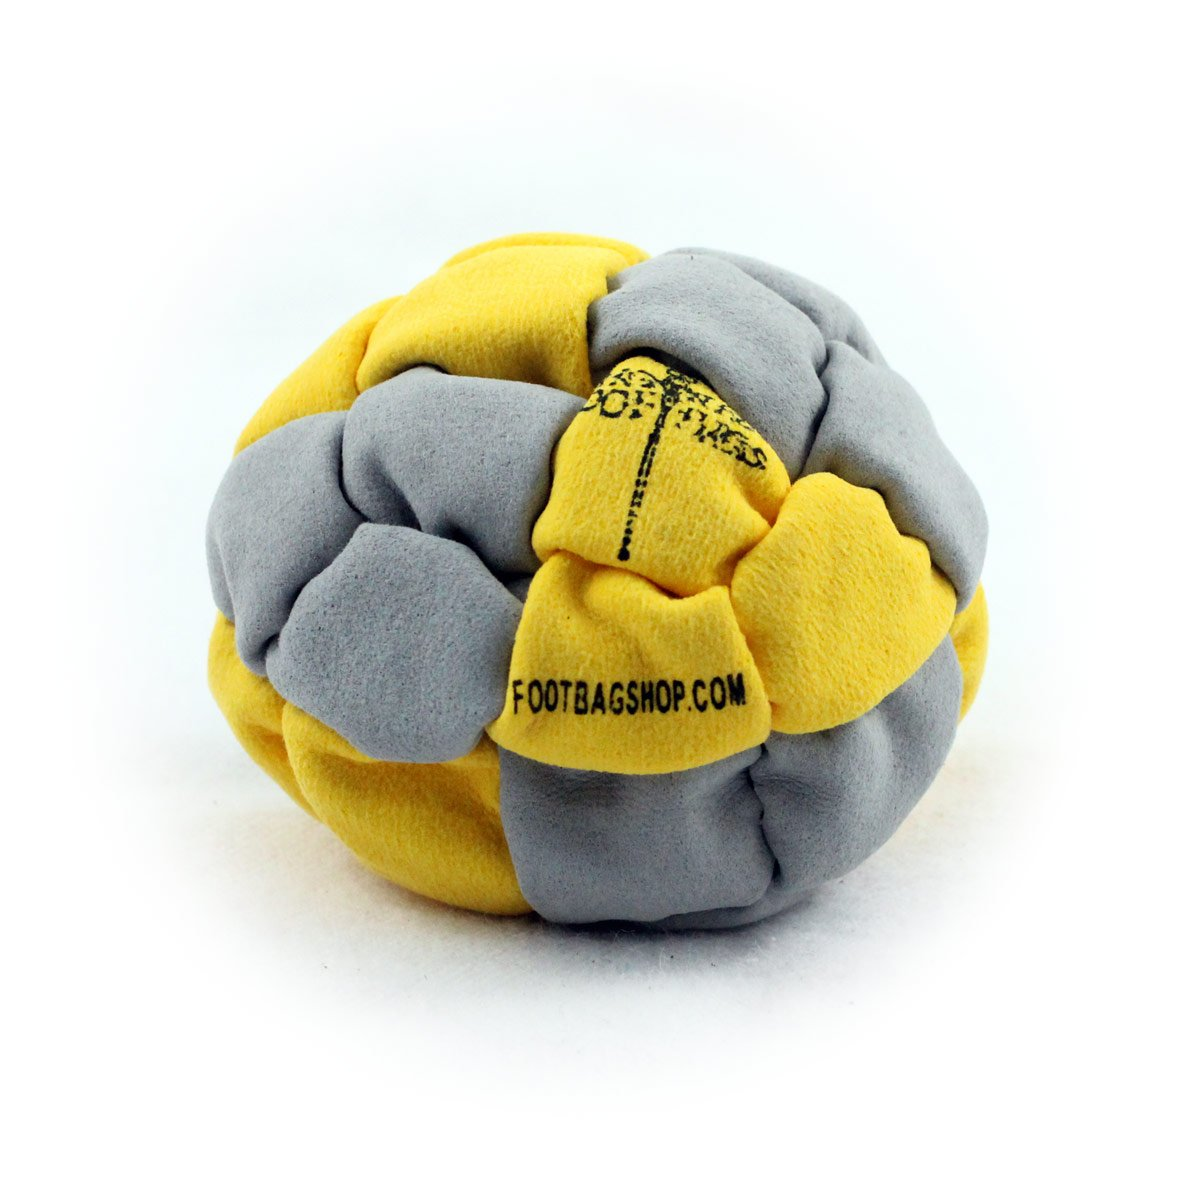 Dragonfly Footbags Yellow and Grey Clipper 24 Panel Metal Filled (Hacky Sack)